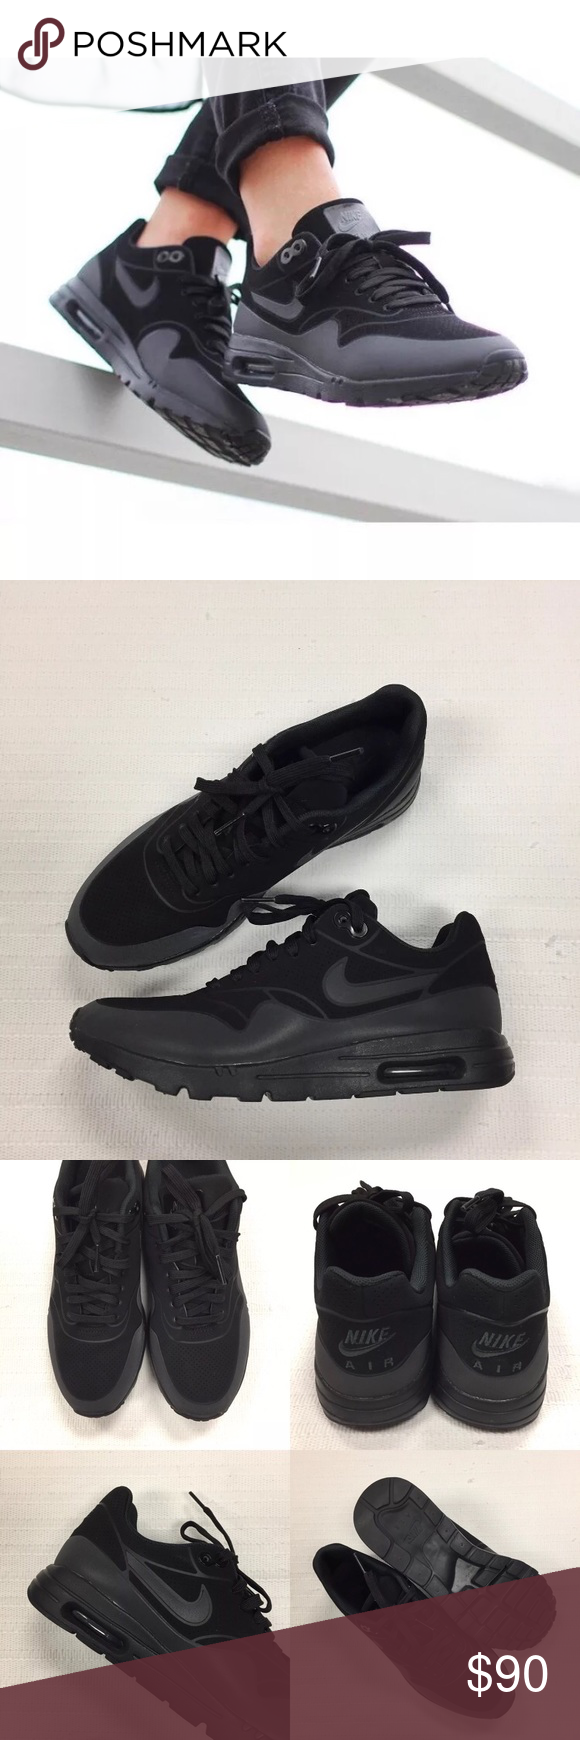 ... details for 43af4 8849e ... clearance womens nike air max 1 ultra moire  sneakers ... 00a0f628c